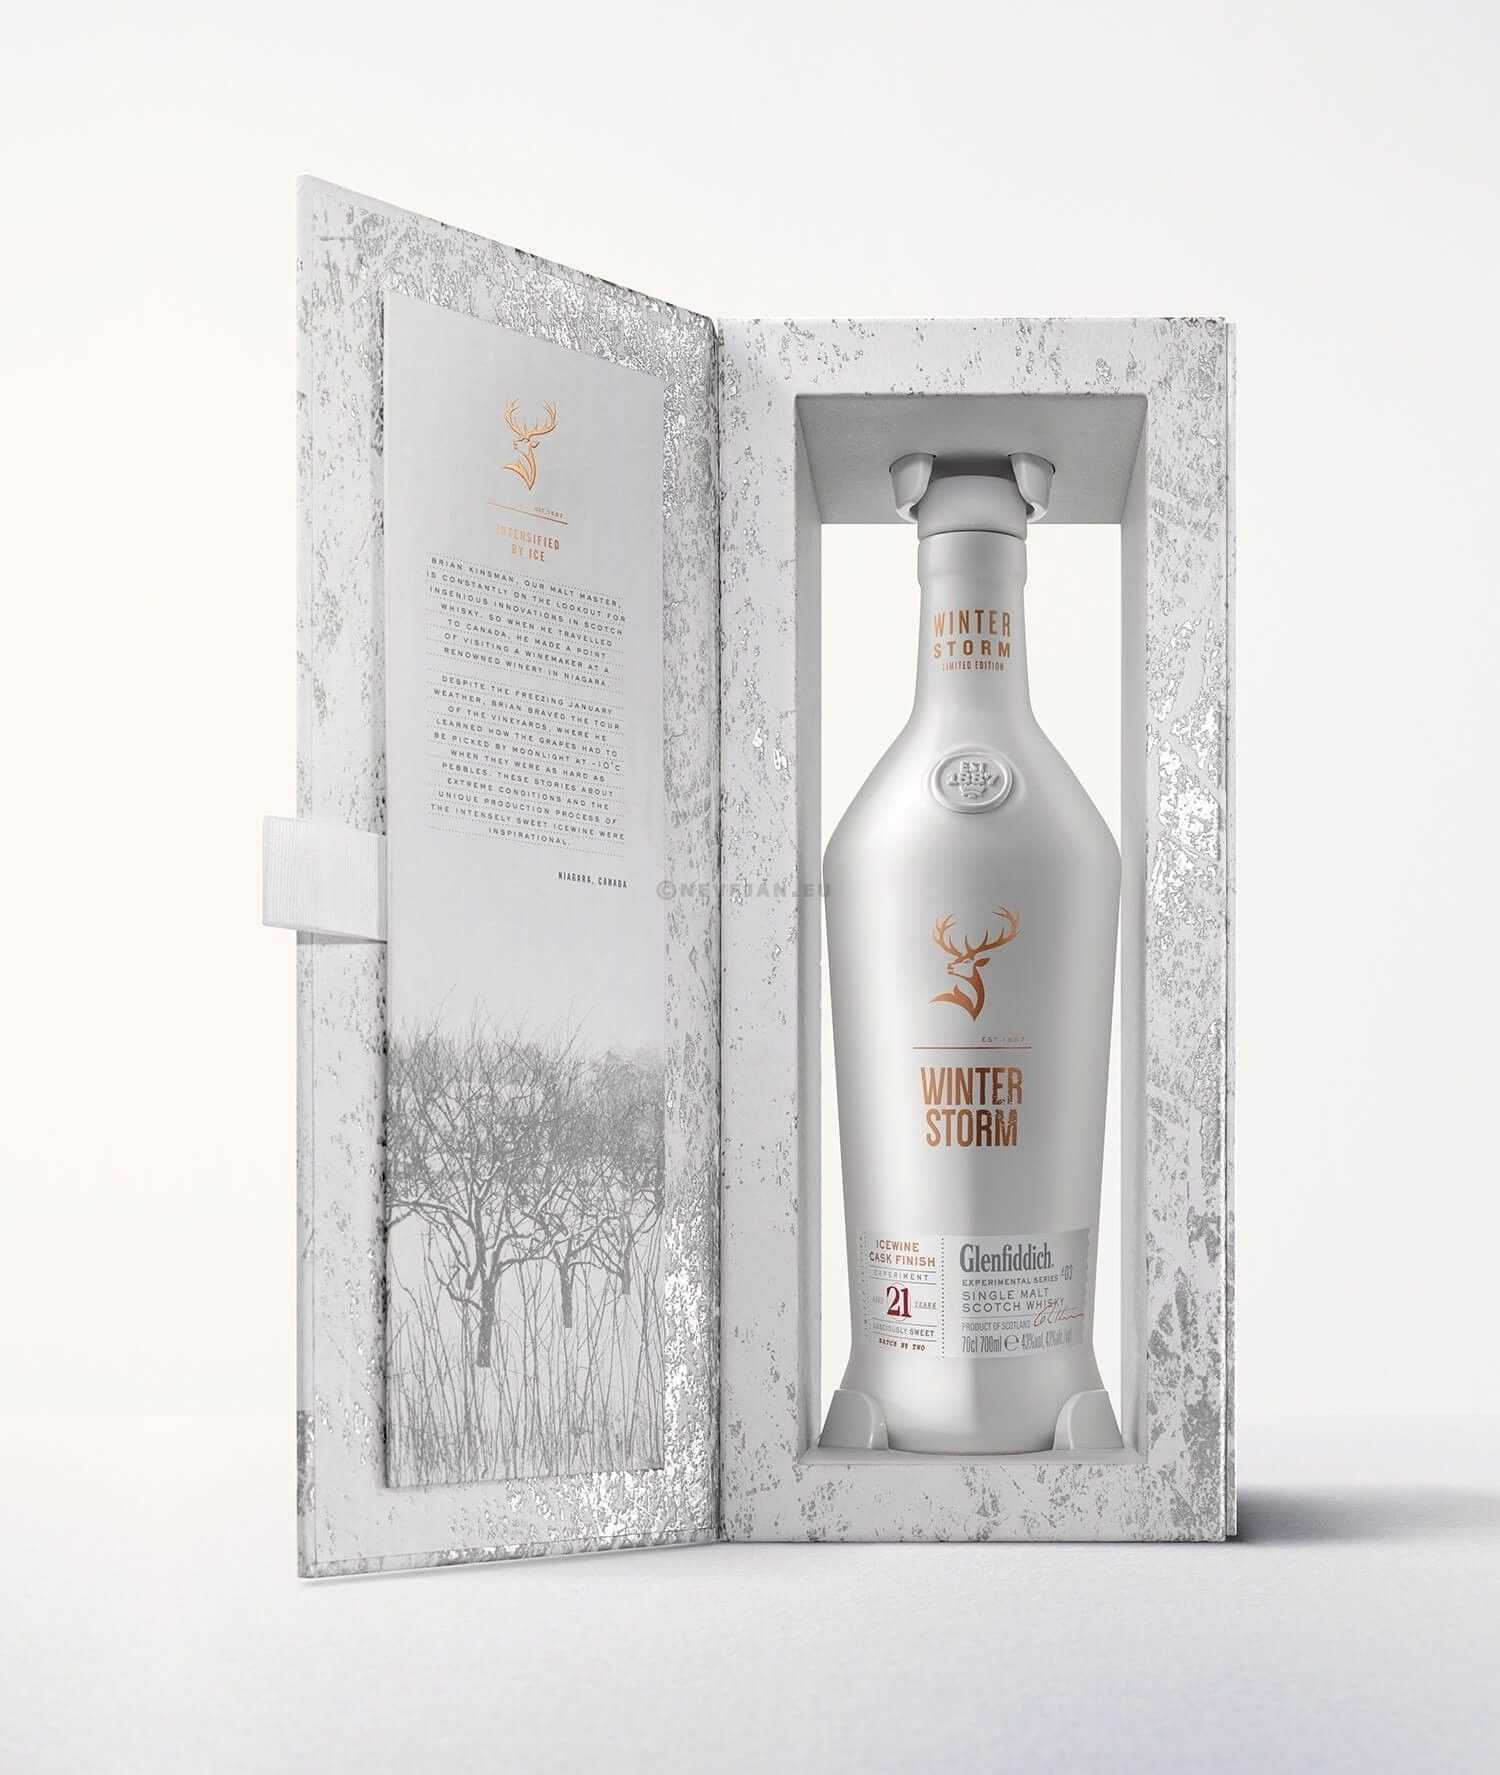 Glenfiddich Winter Storm 21 Years Old 70cl 43% Speyside Single Malt Scotch Whisky